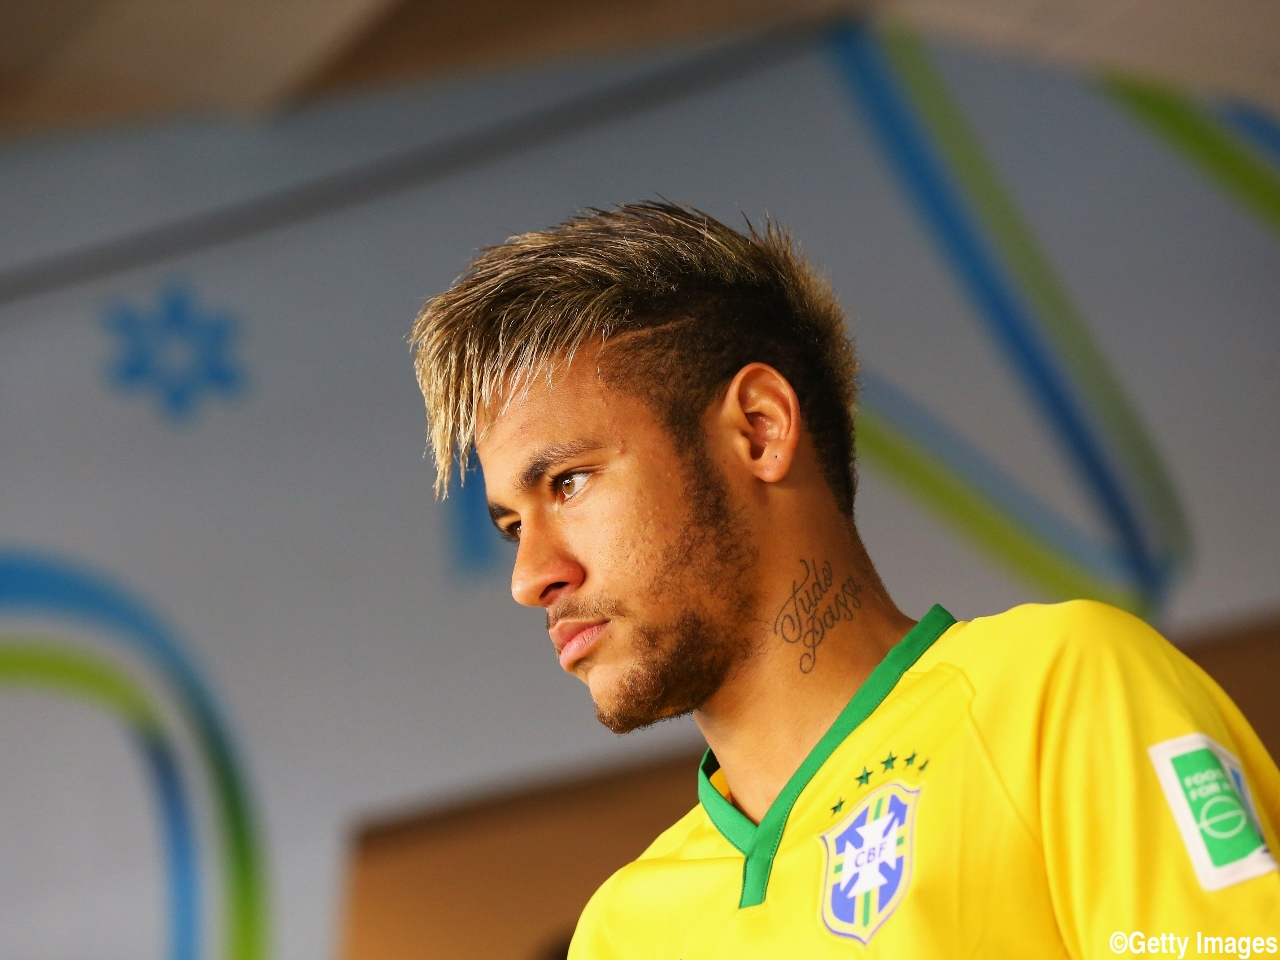 FORTALEZA, BRAZIL - JULY 04: Neymar of Brazil looks on in the tunnel prior to the 2014 FIFA World Cup Brazil Quarter Final match between Brazil and Colombia at Estadio Castelao on July 4, 2014 in Fortaleza, Brazil. (Photo by Alex Livesey - FIFA/FIFA via Getty Images)